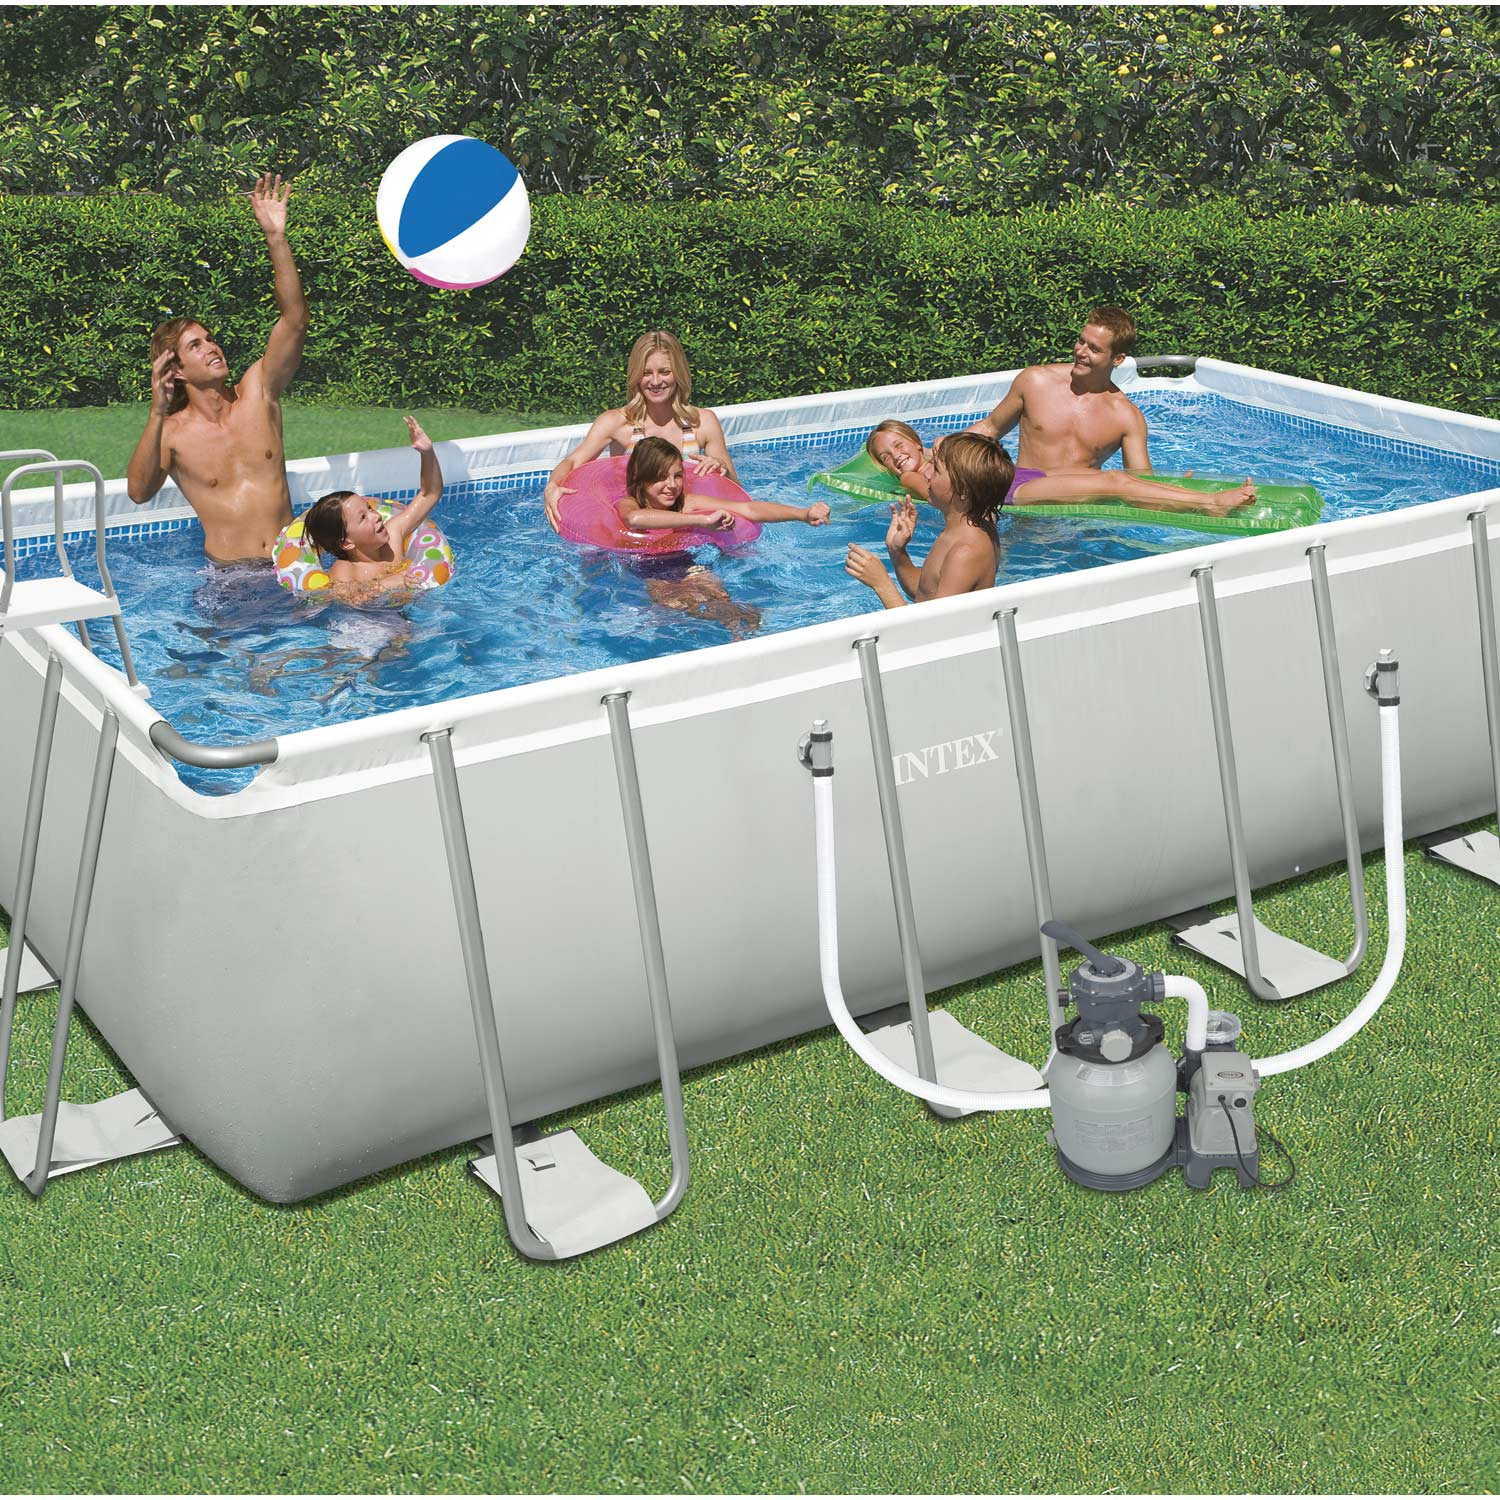 Piscine hors sol autoportante tubulaire ultra silver intex for Piscine hors sol dimension